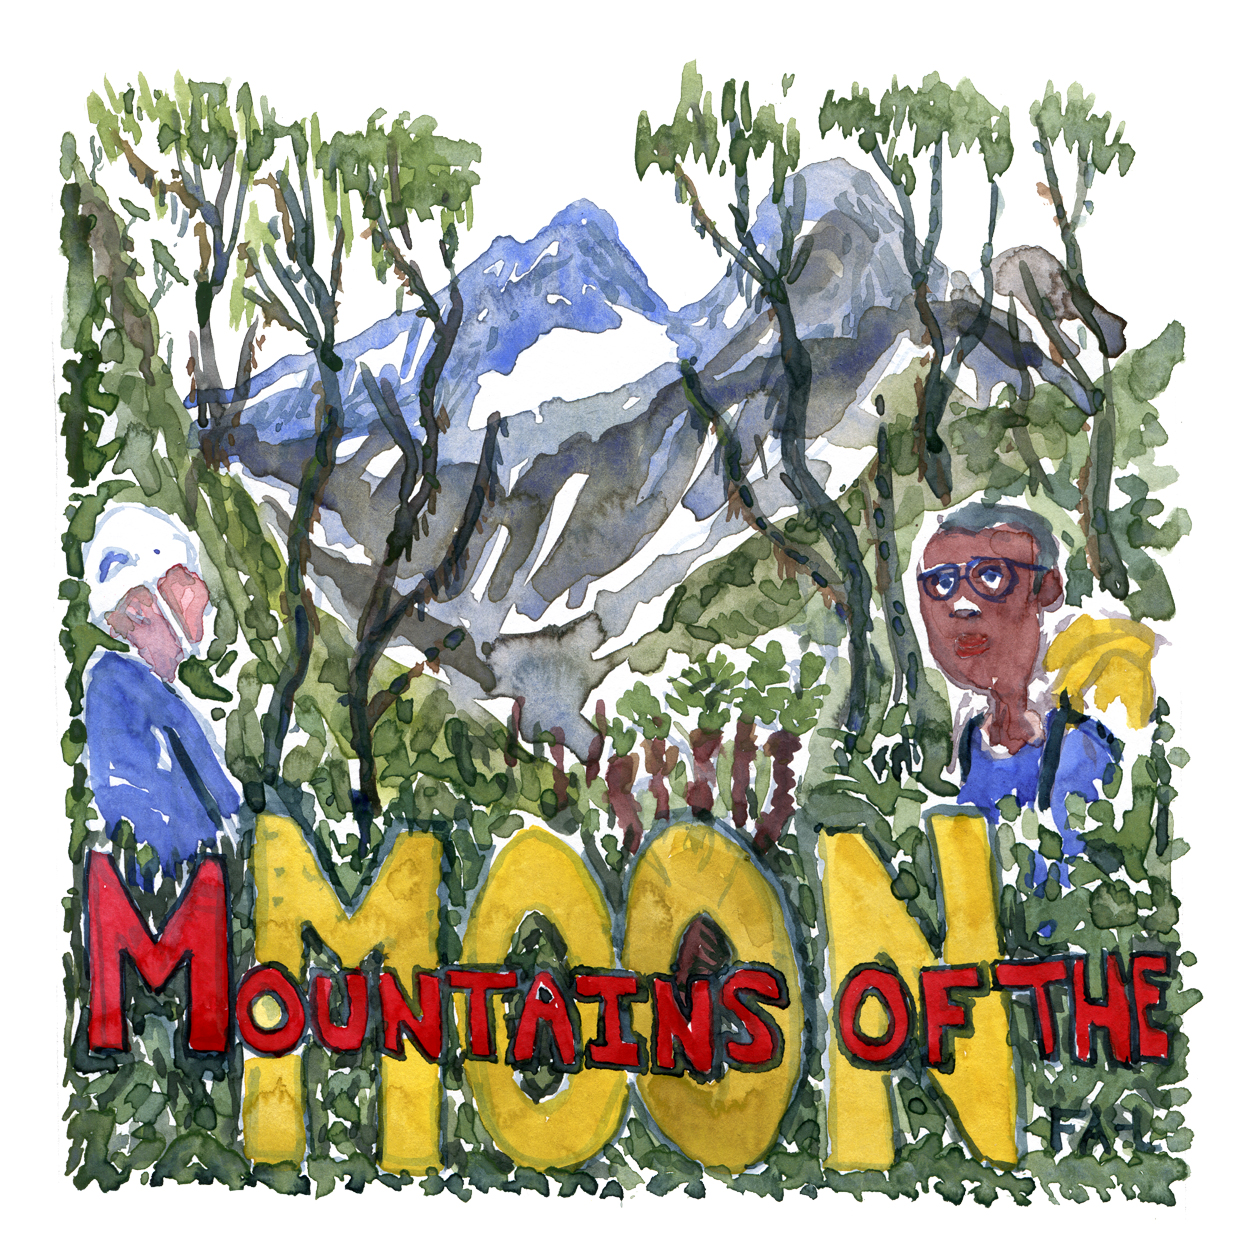 Watercolor illustration of hikers in the Rwenzori mountains with the text Mountains of the Moon written in front. Painting by Frits Ahlefeldt